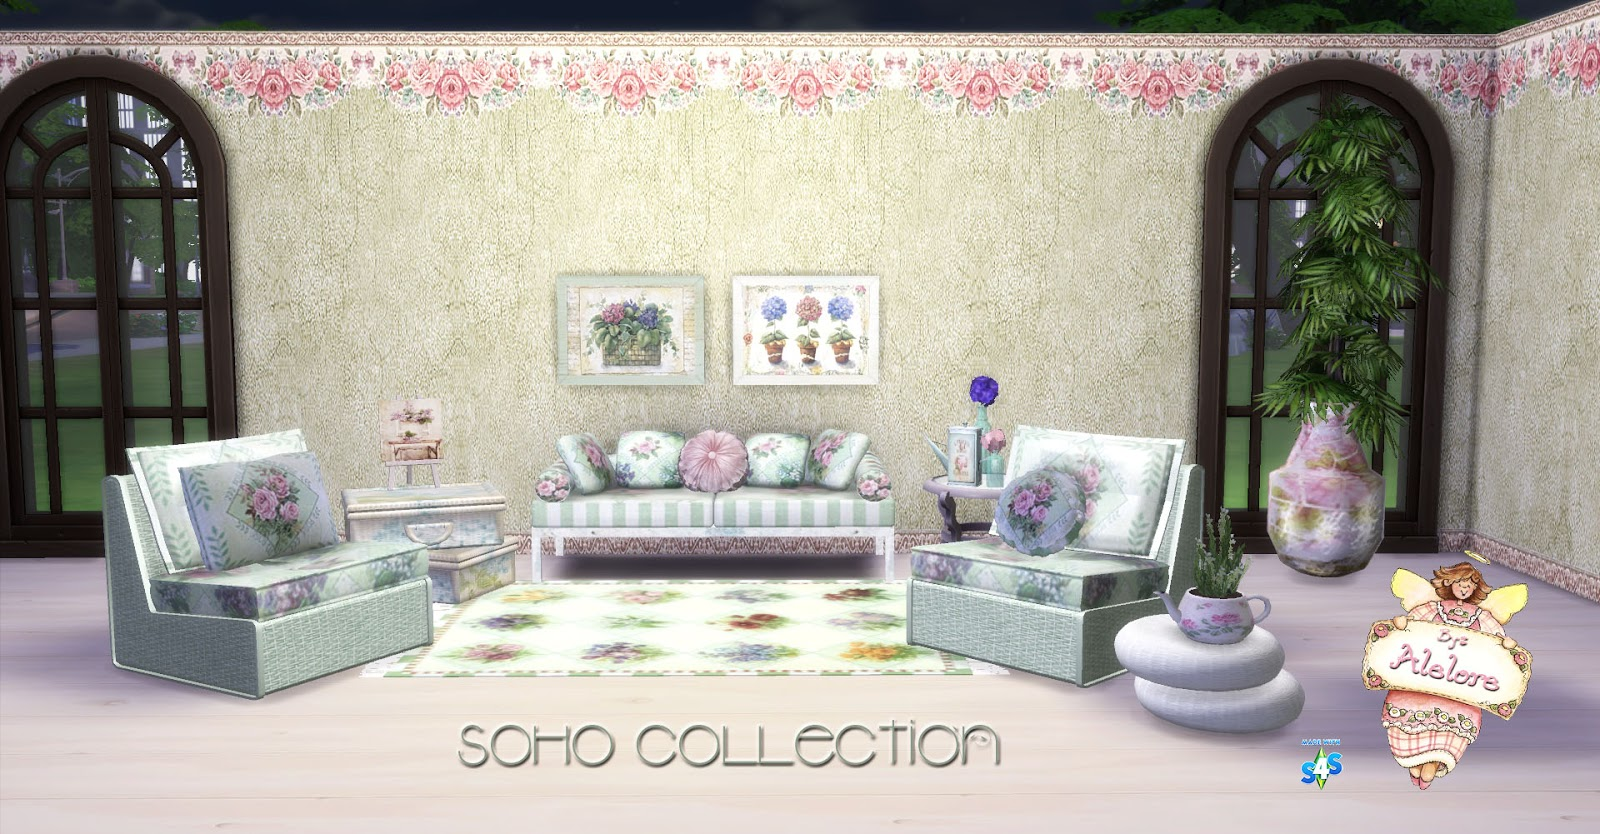 Alelore Sims Blog: SOHO COLLECTION